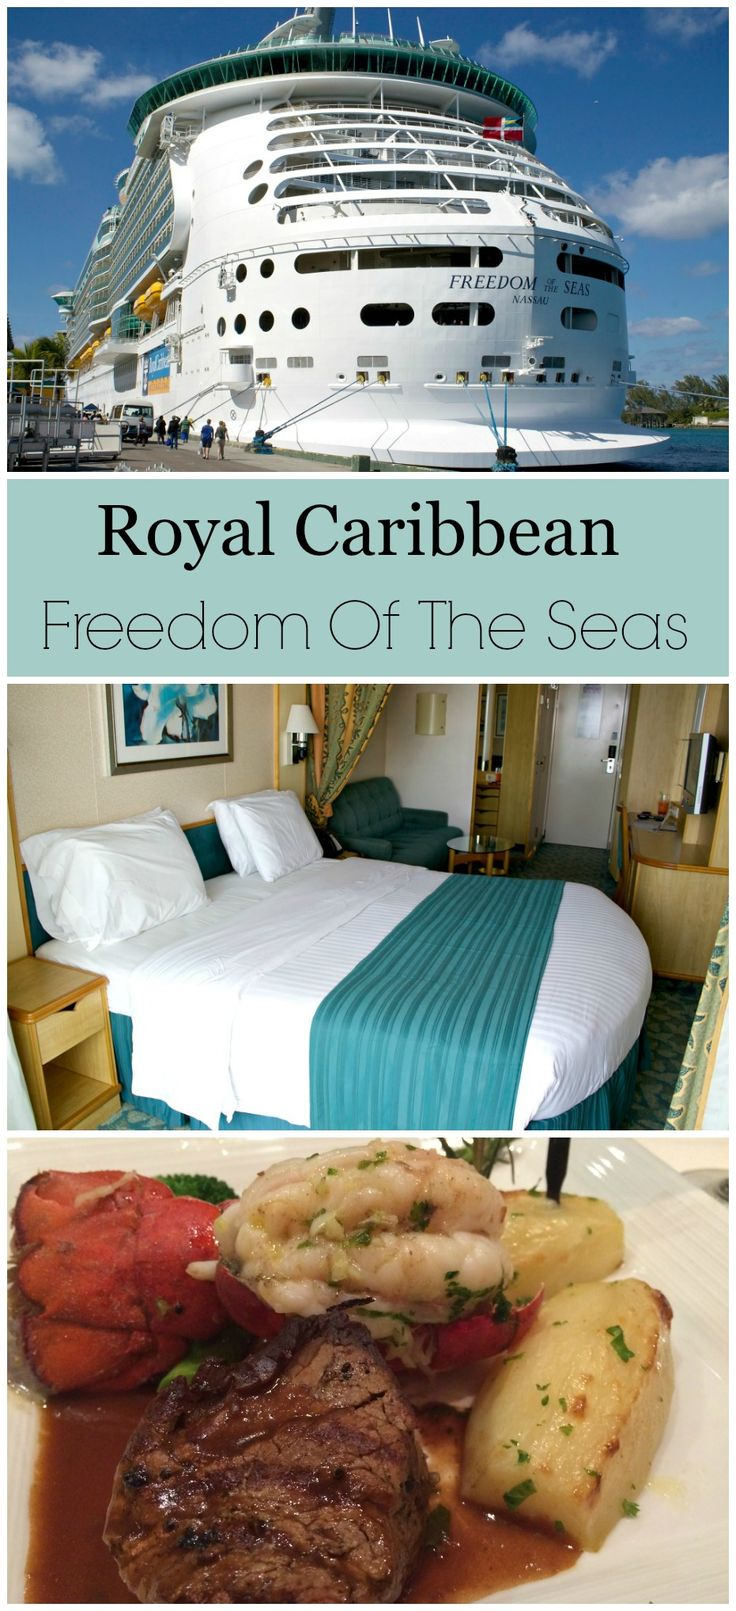 Freedom of the seas renovations 2015 - Freedom Of The Seas Ship Royal Caribbean Review